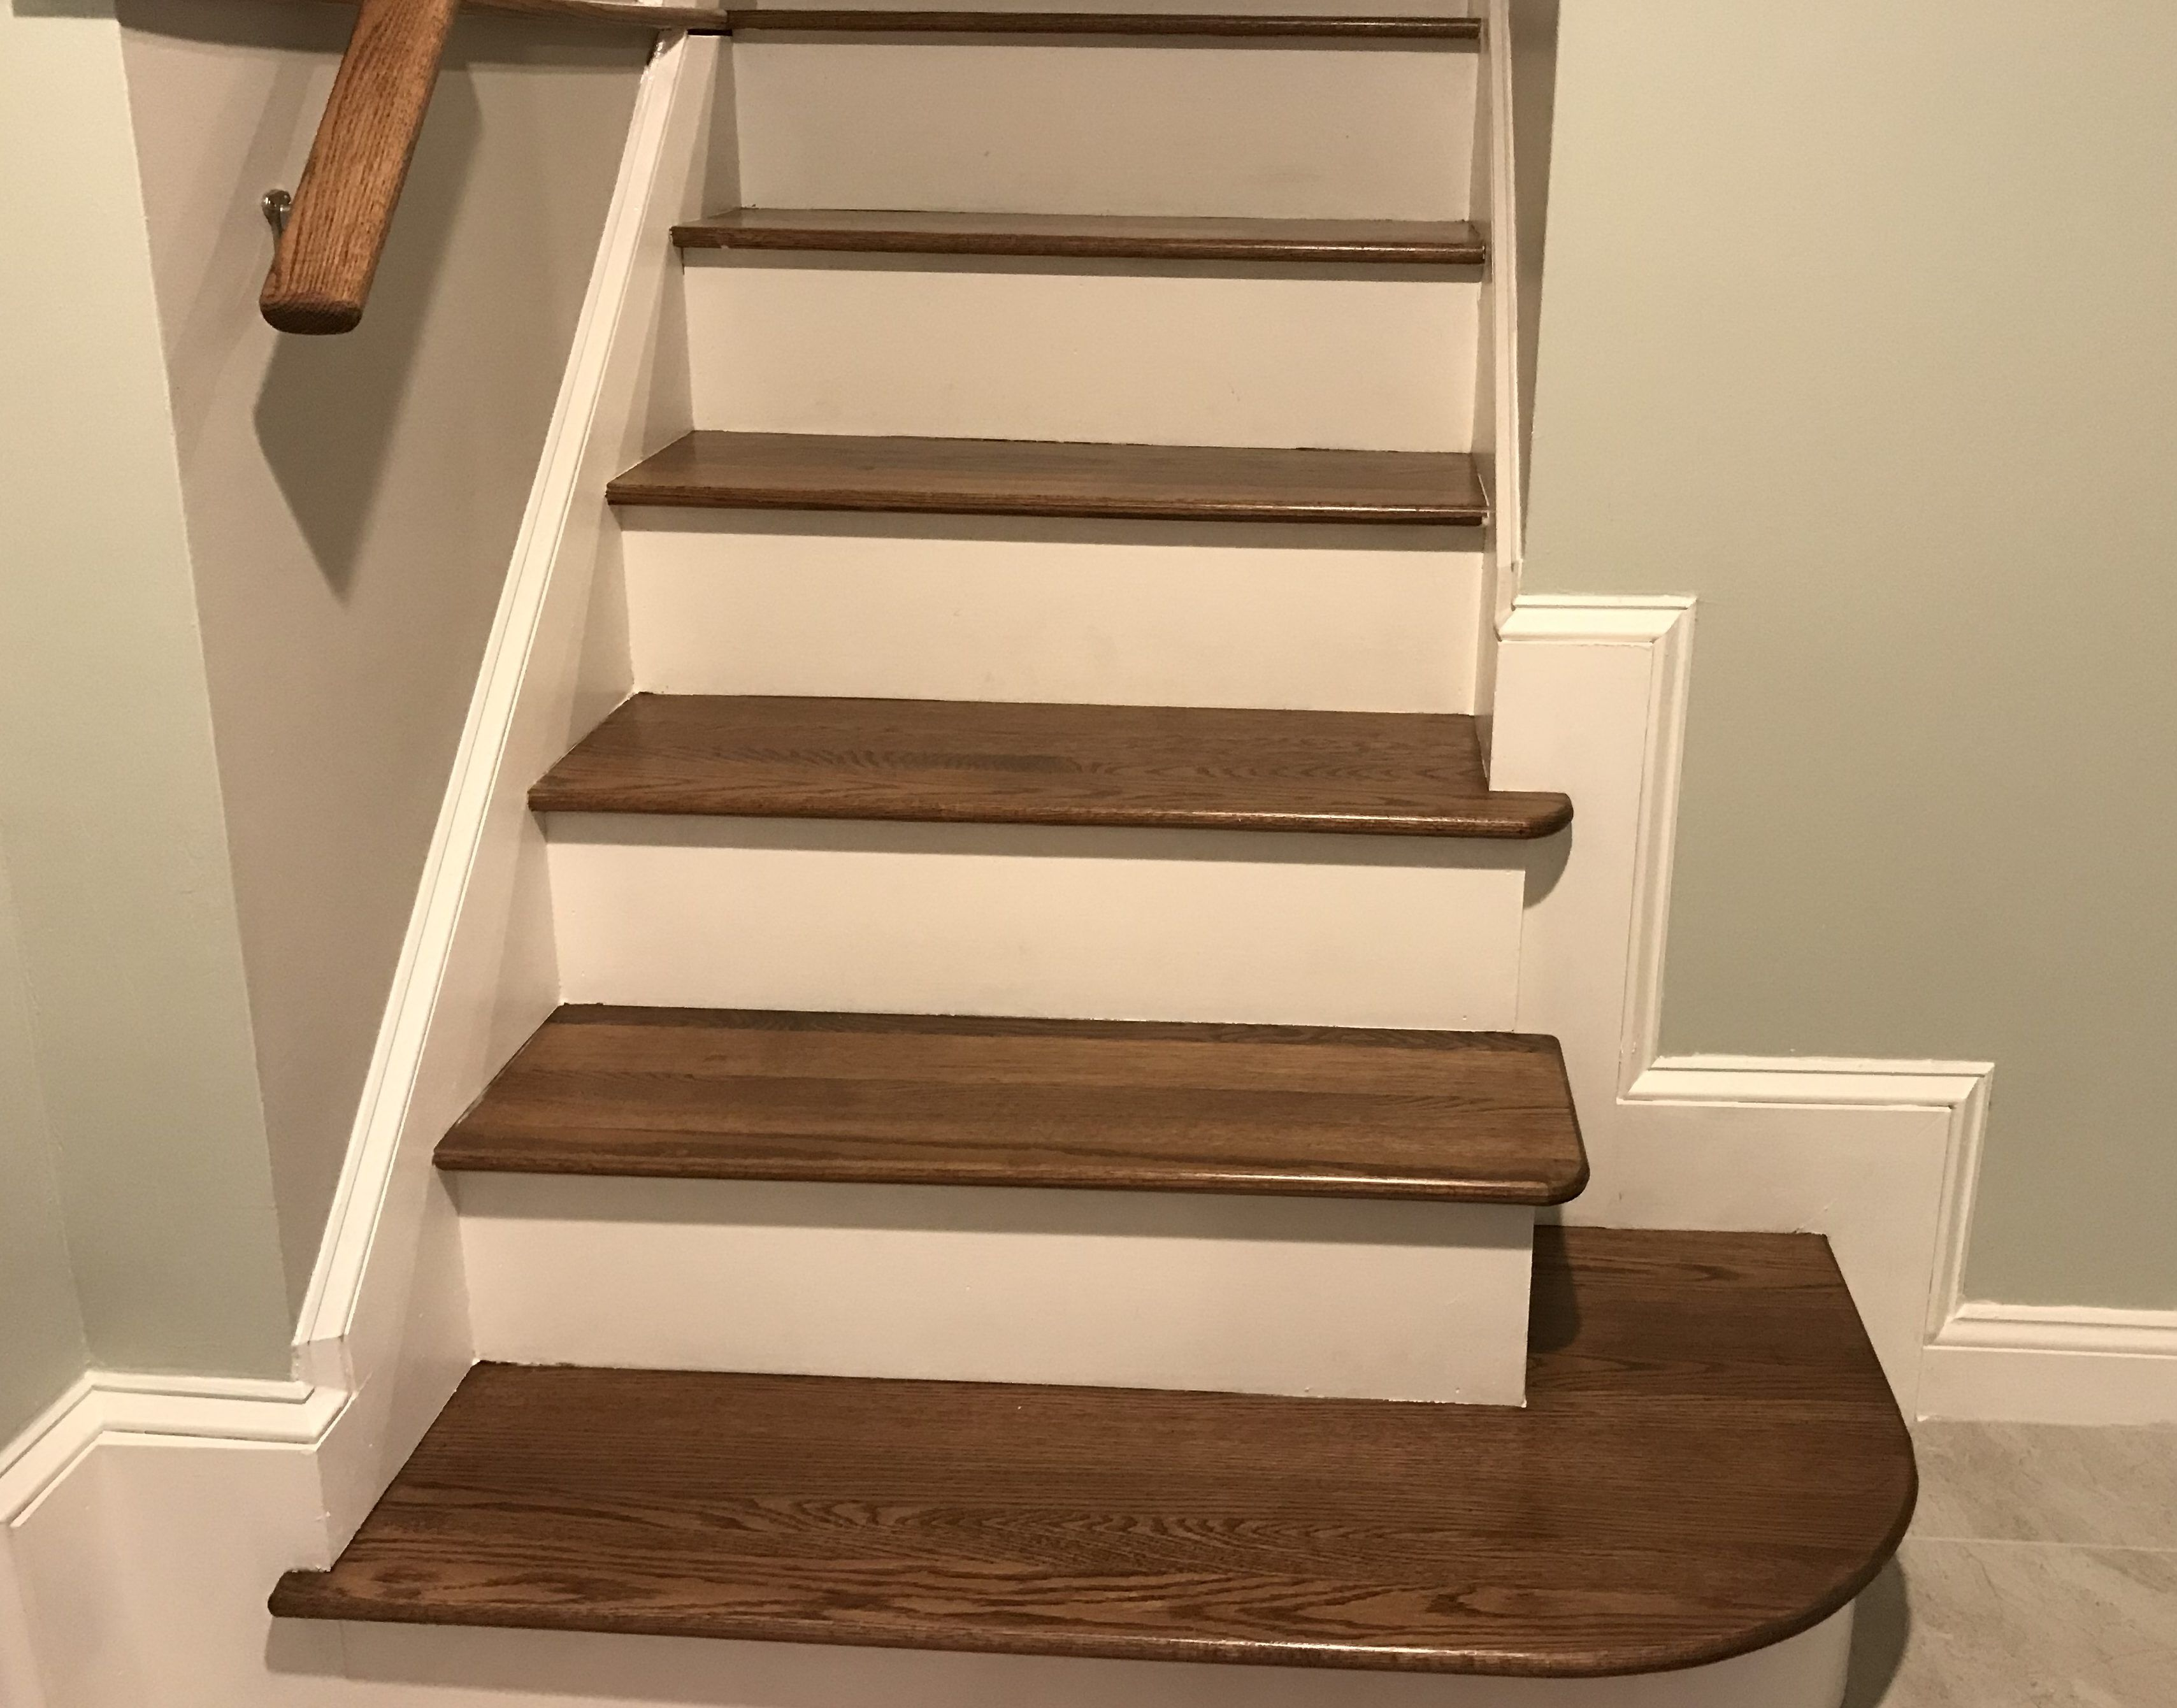 Best How To Make Hardwood Stairs Less Slippery 4 Simple 640 x 480